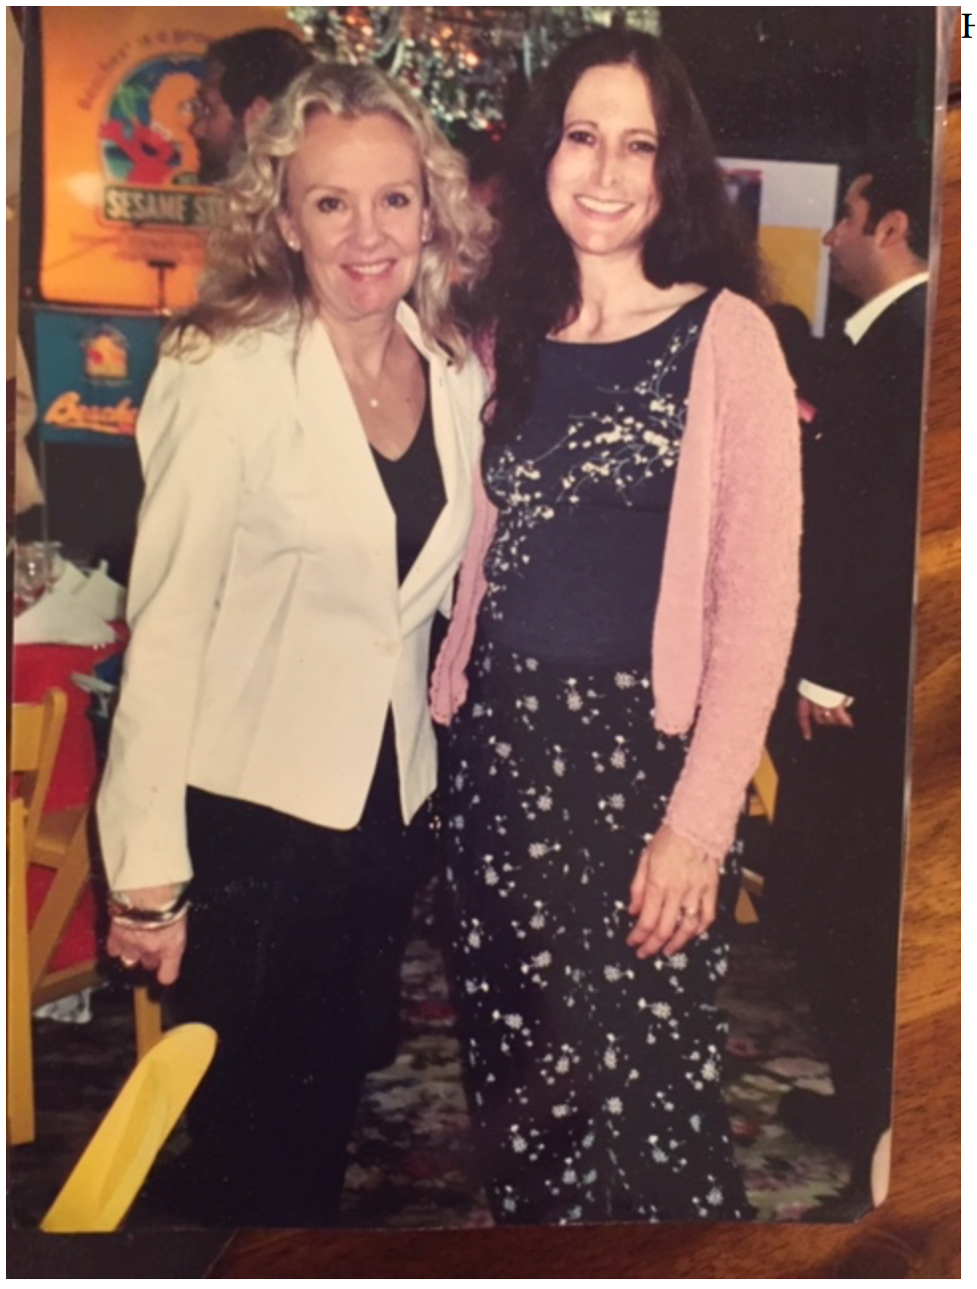 Hayley Mills and the author at a Disney party at Tavern on the Green, circa 2000